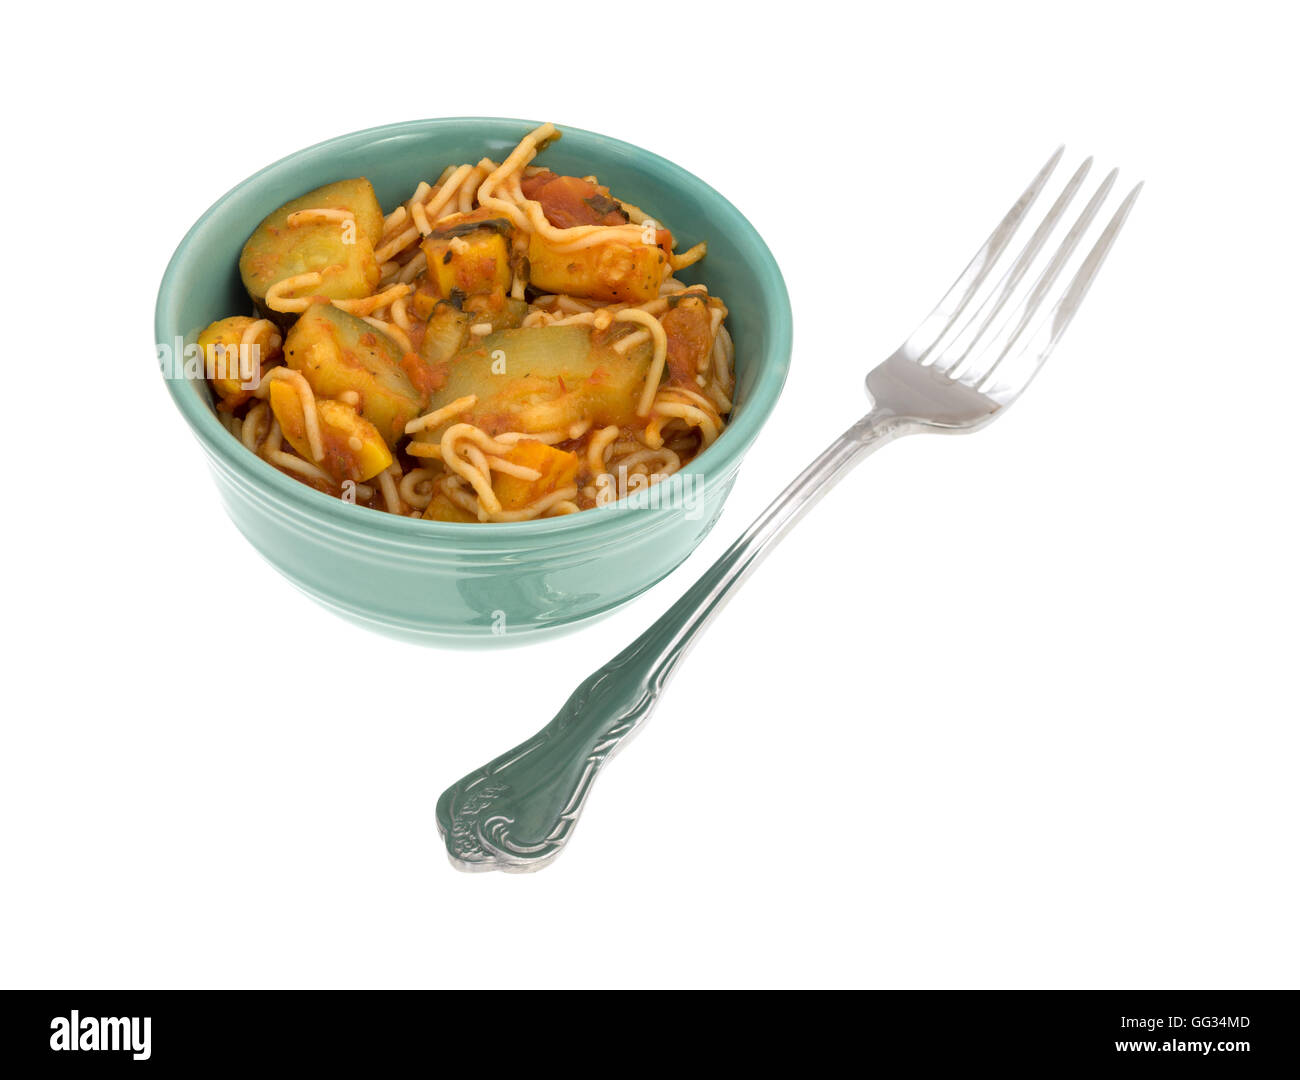 TV dinner of angel hair pasta with zucchini and spinach in a small green bowl with a fork to the side on a white - Stock Image